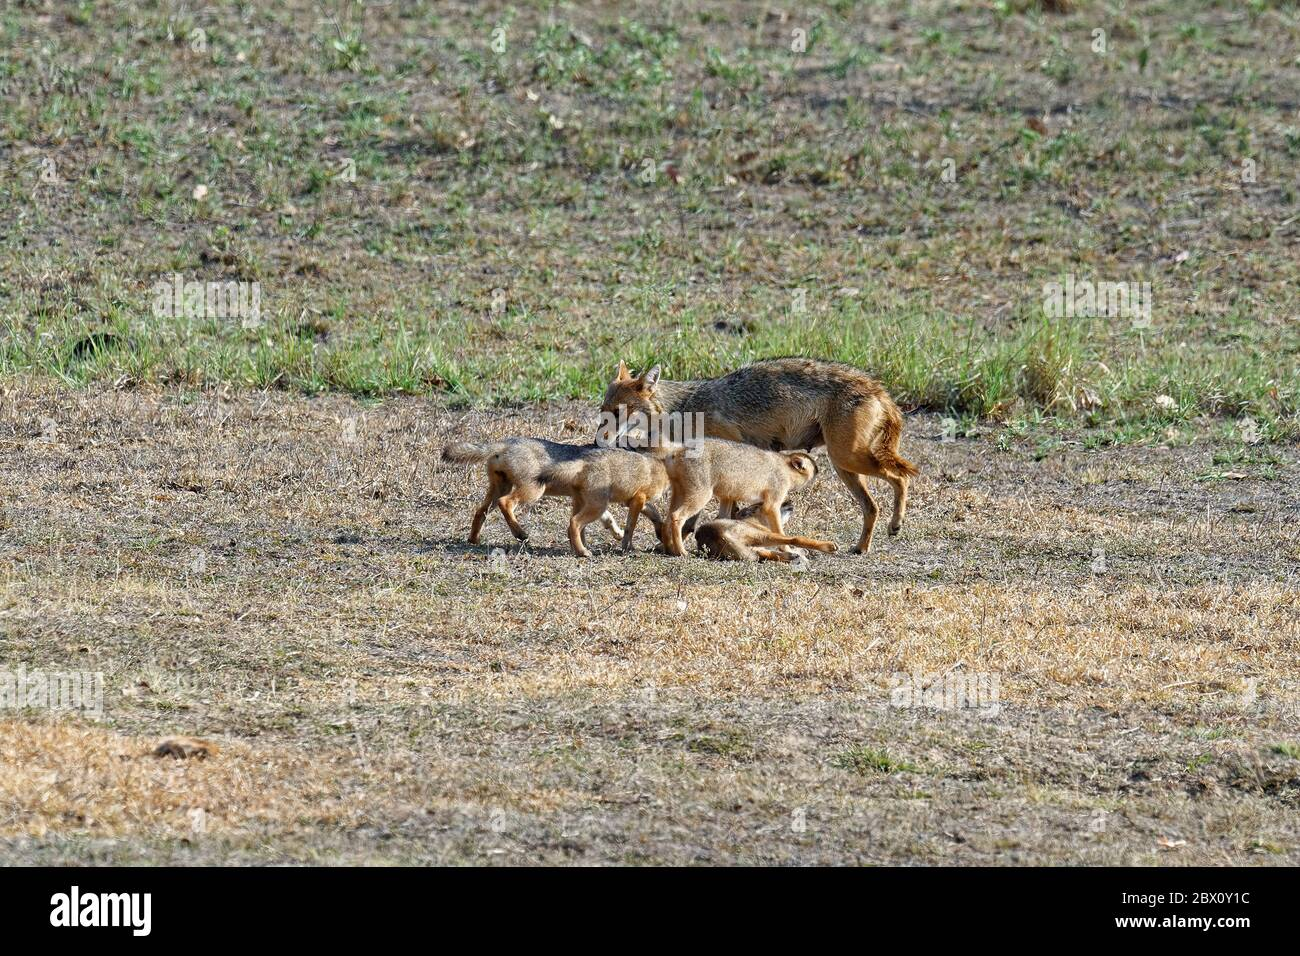 Female Indian jackal (Canis aureus) feeding and playing with her cubs, Kanha Tiger Reserve or Kanha-Kisli National Park, Madhya Pradesh state, India Stock Photo